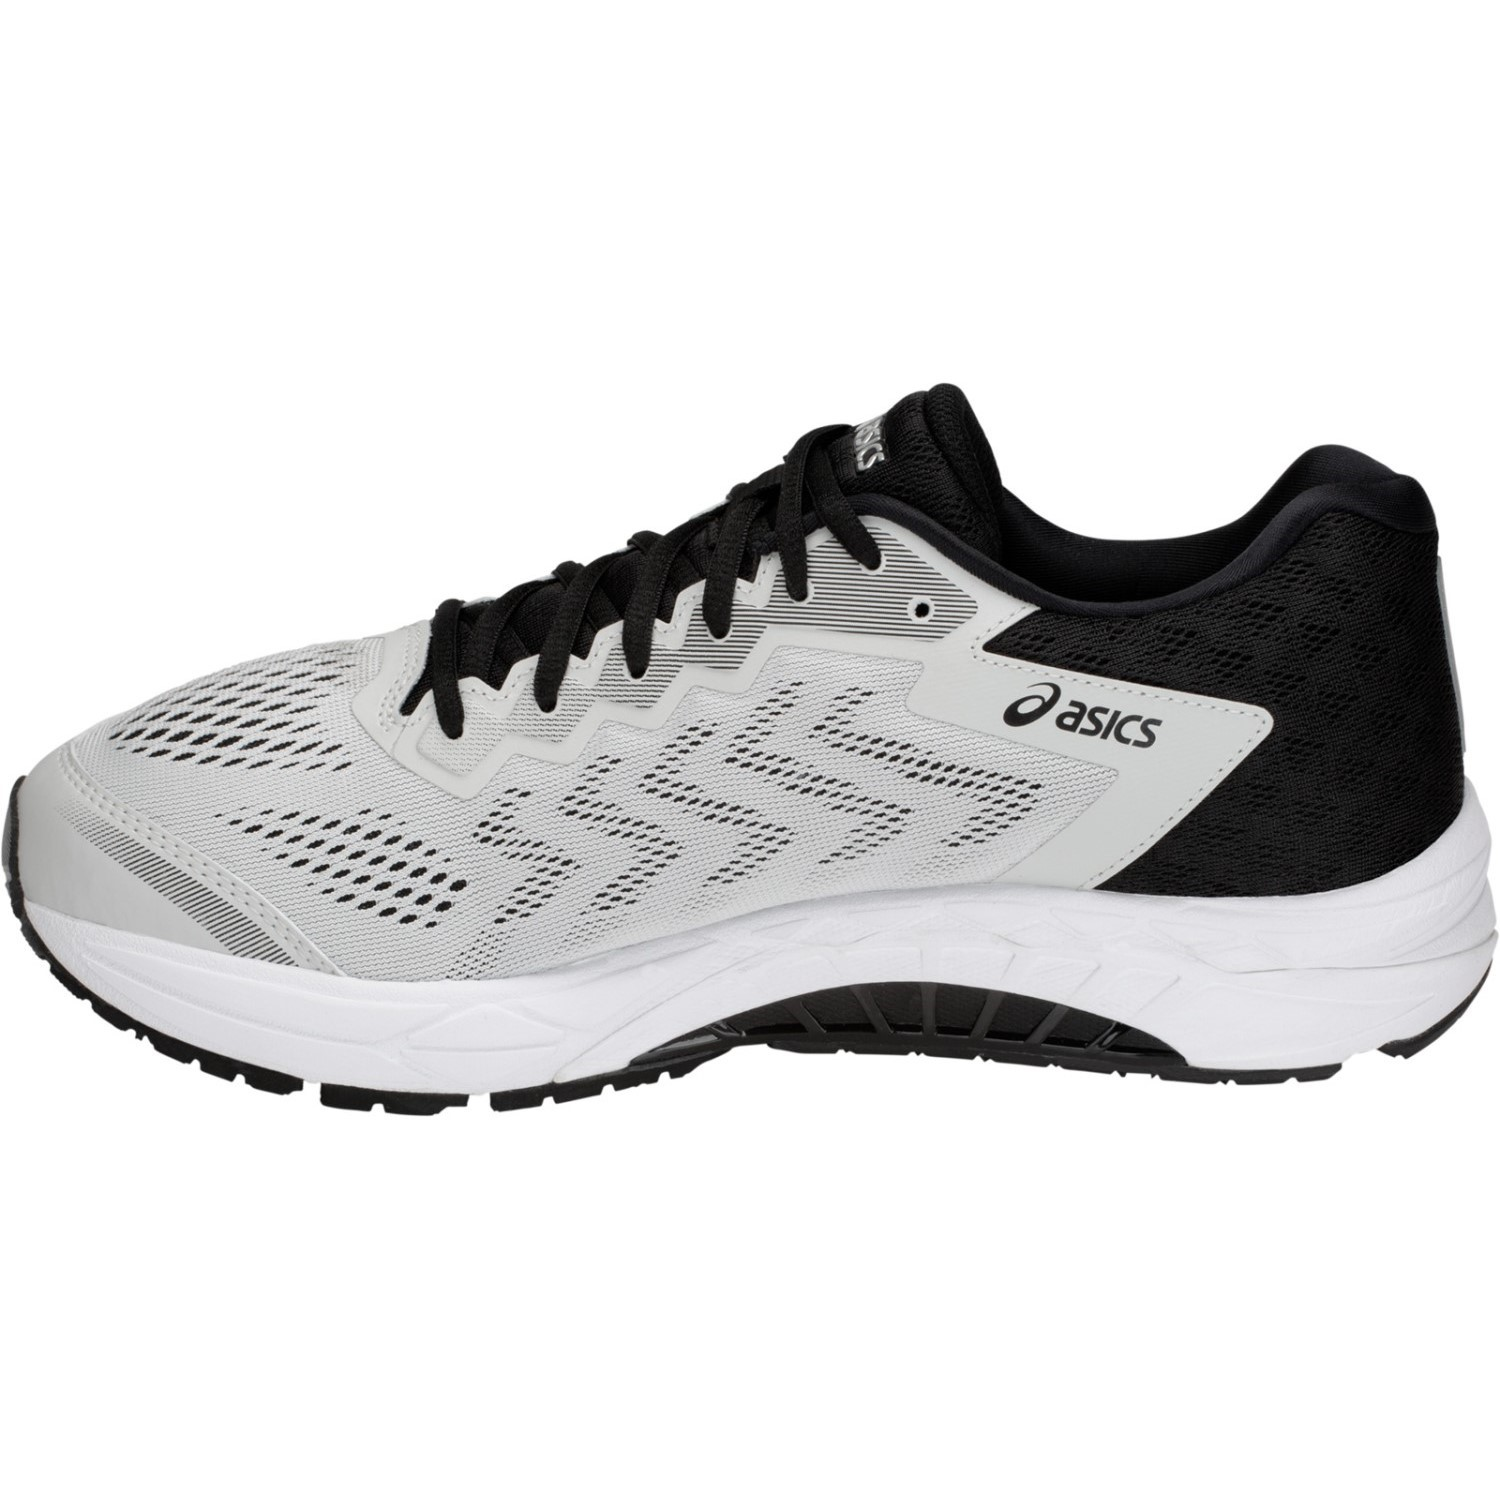 72d7fa63 Asics Gel Fortitude 8 - Mens Running Shoes